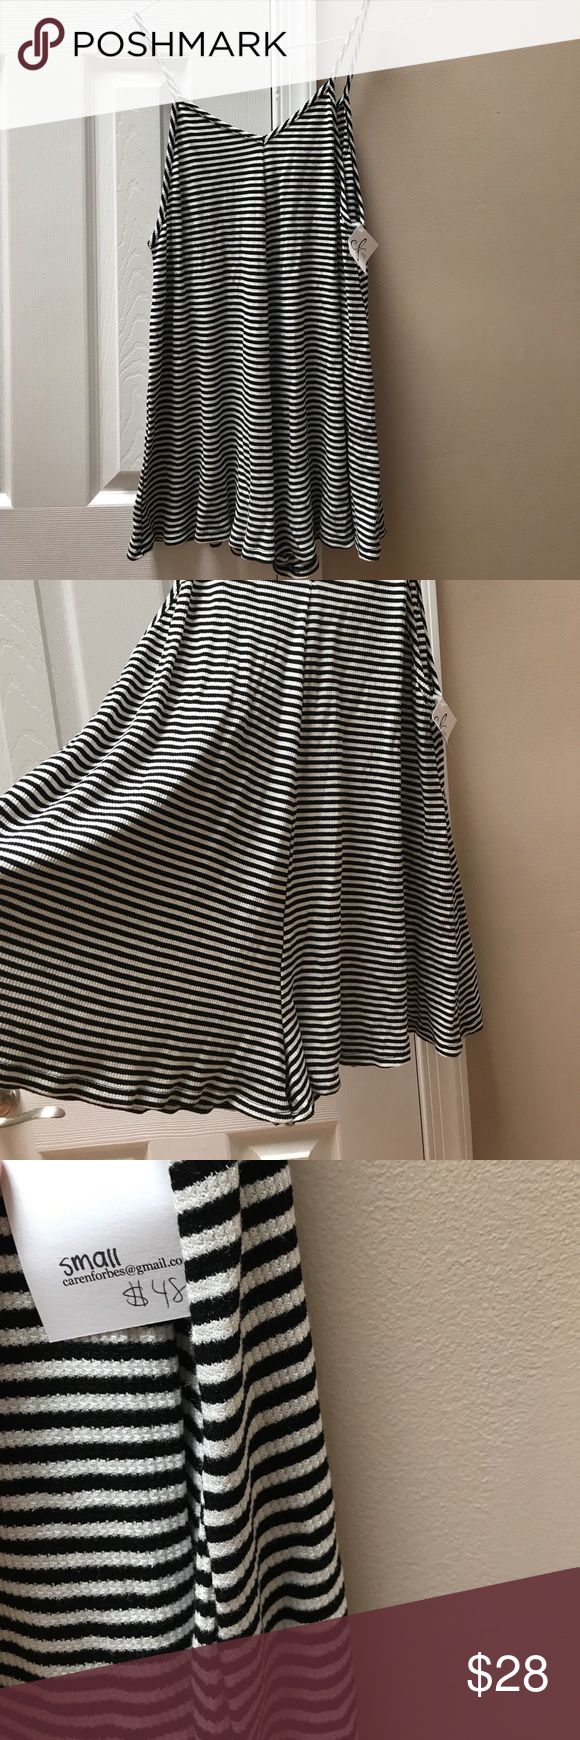 Caren Forbes jumper size small This black and white romper had thing spaghetti straps. Light soft material. 95% rayon 5% spandex. Other